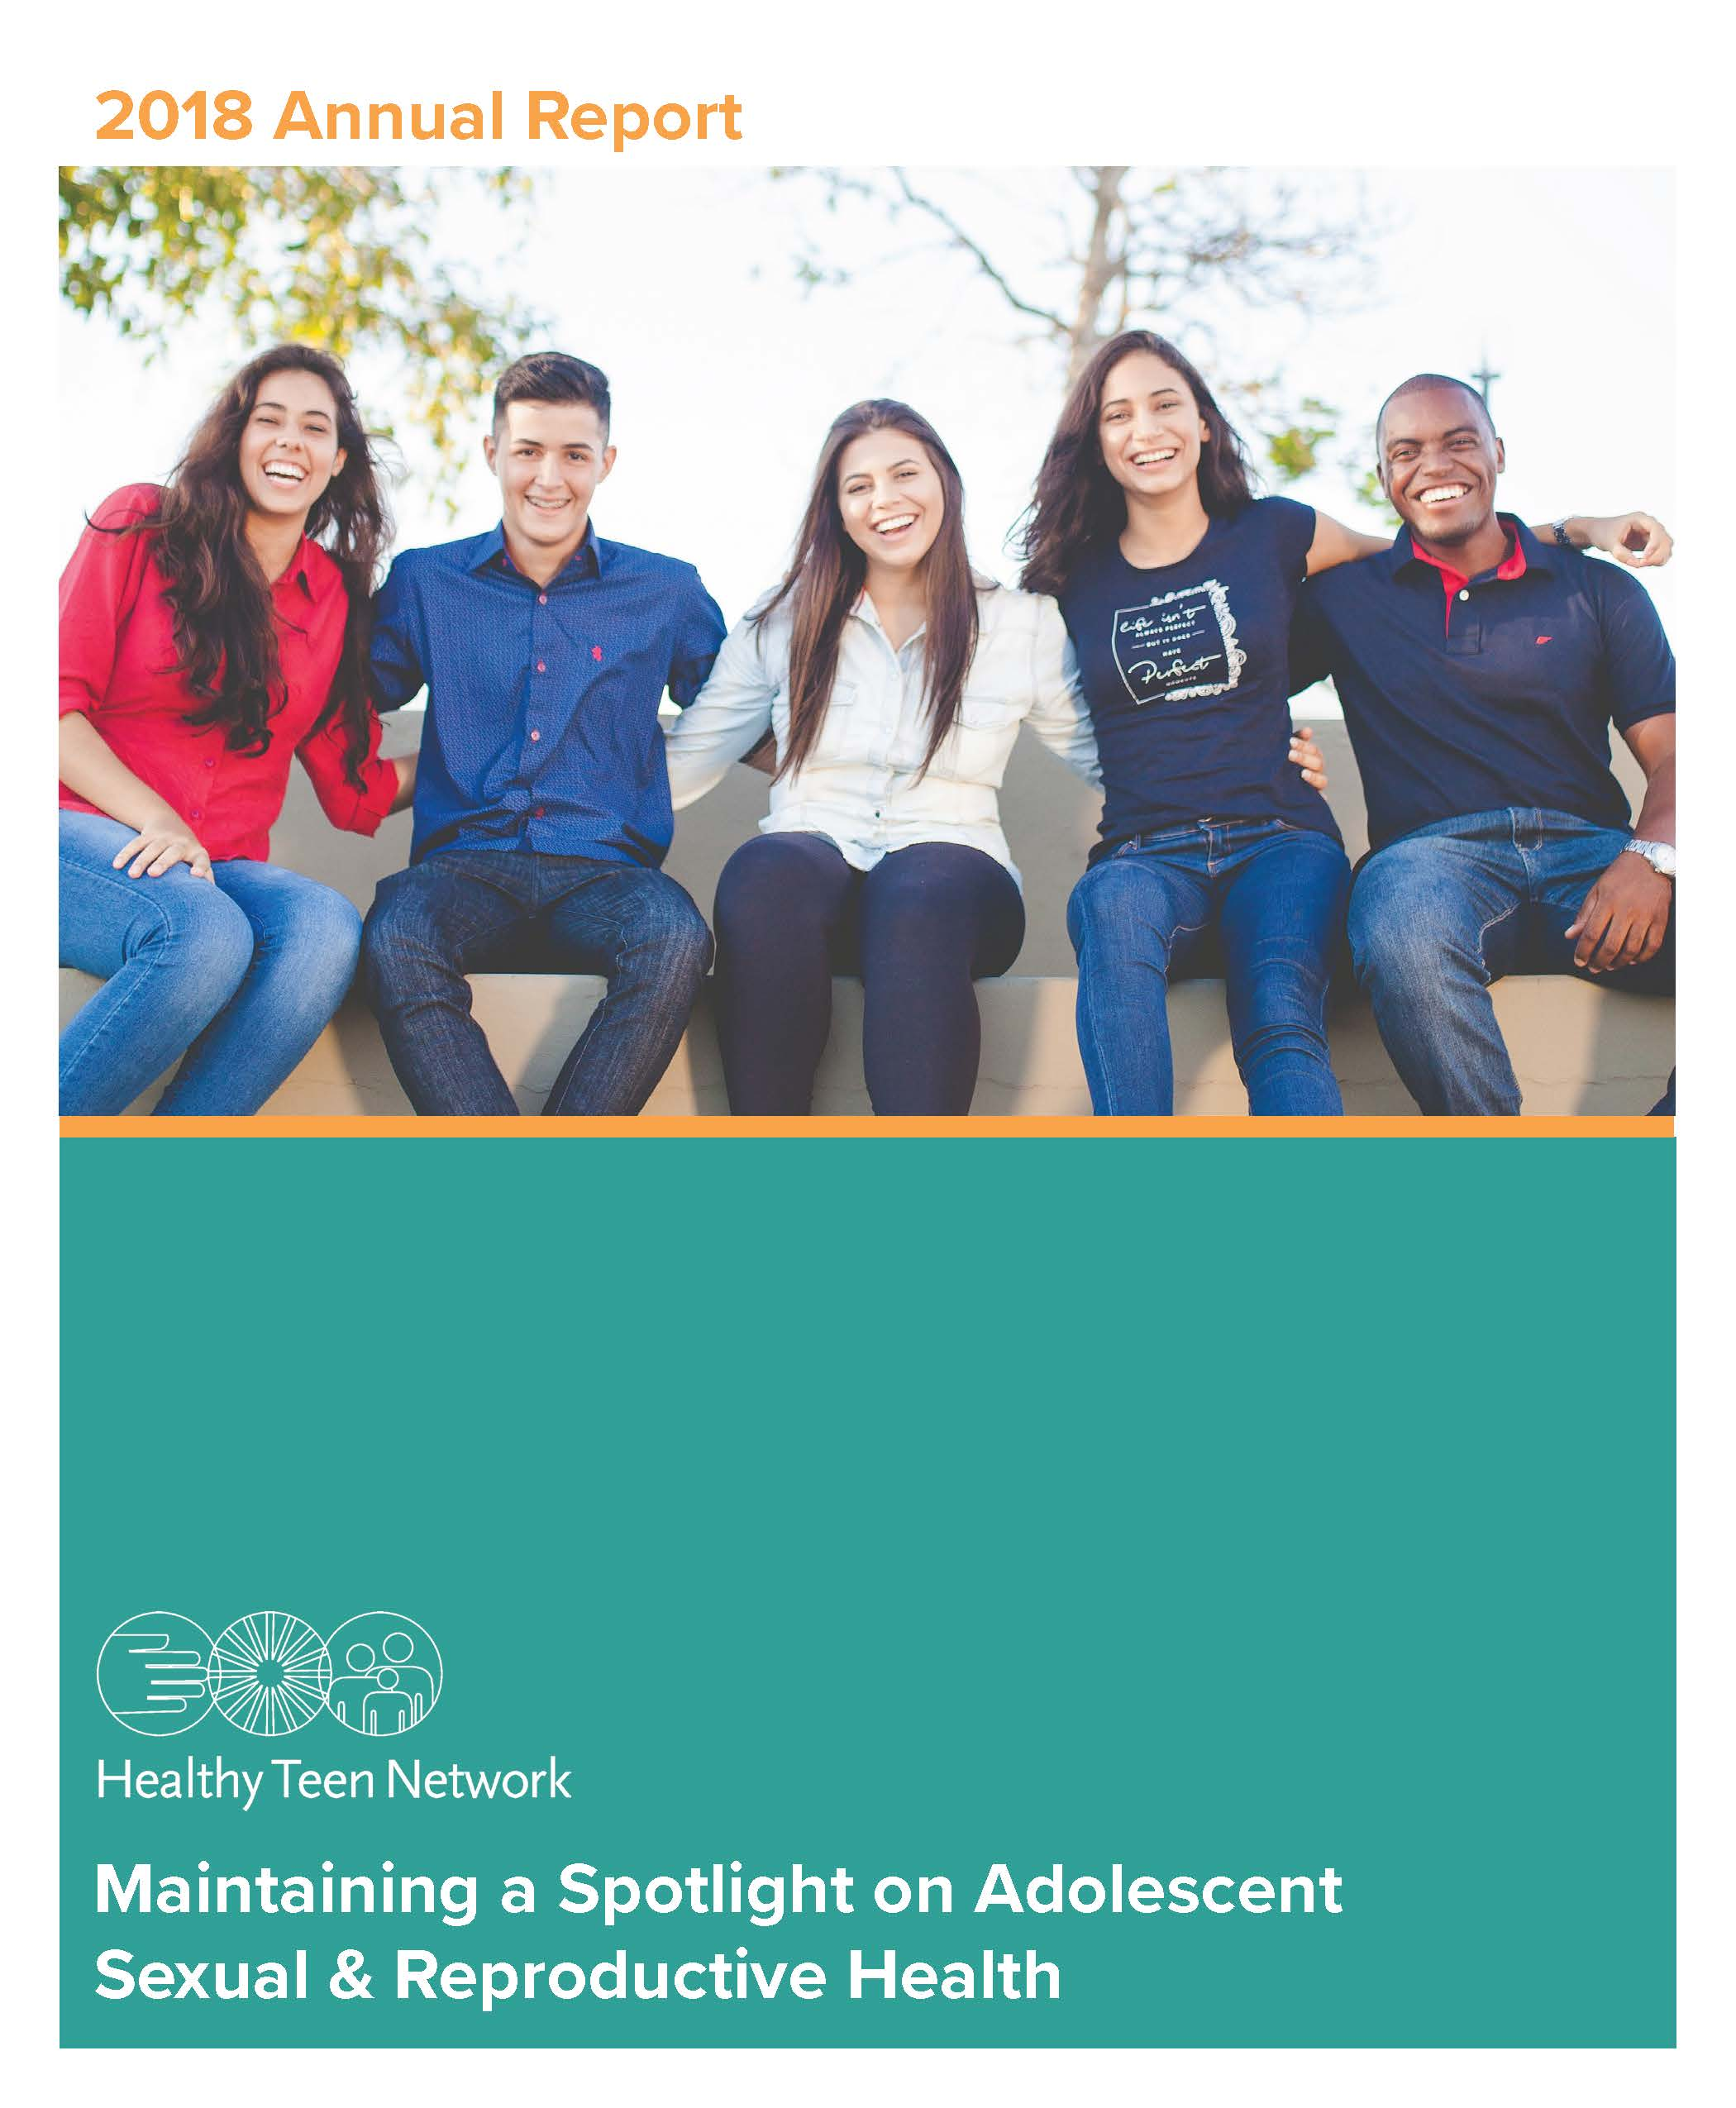 Image of cover of 2018 annual report. Includes title, with 5 young people sitting together, in a row, outside, smiling, with arms around each other's shoulders.